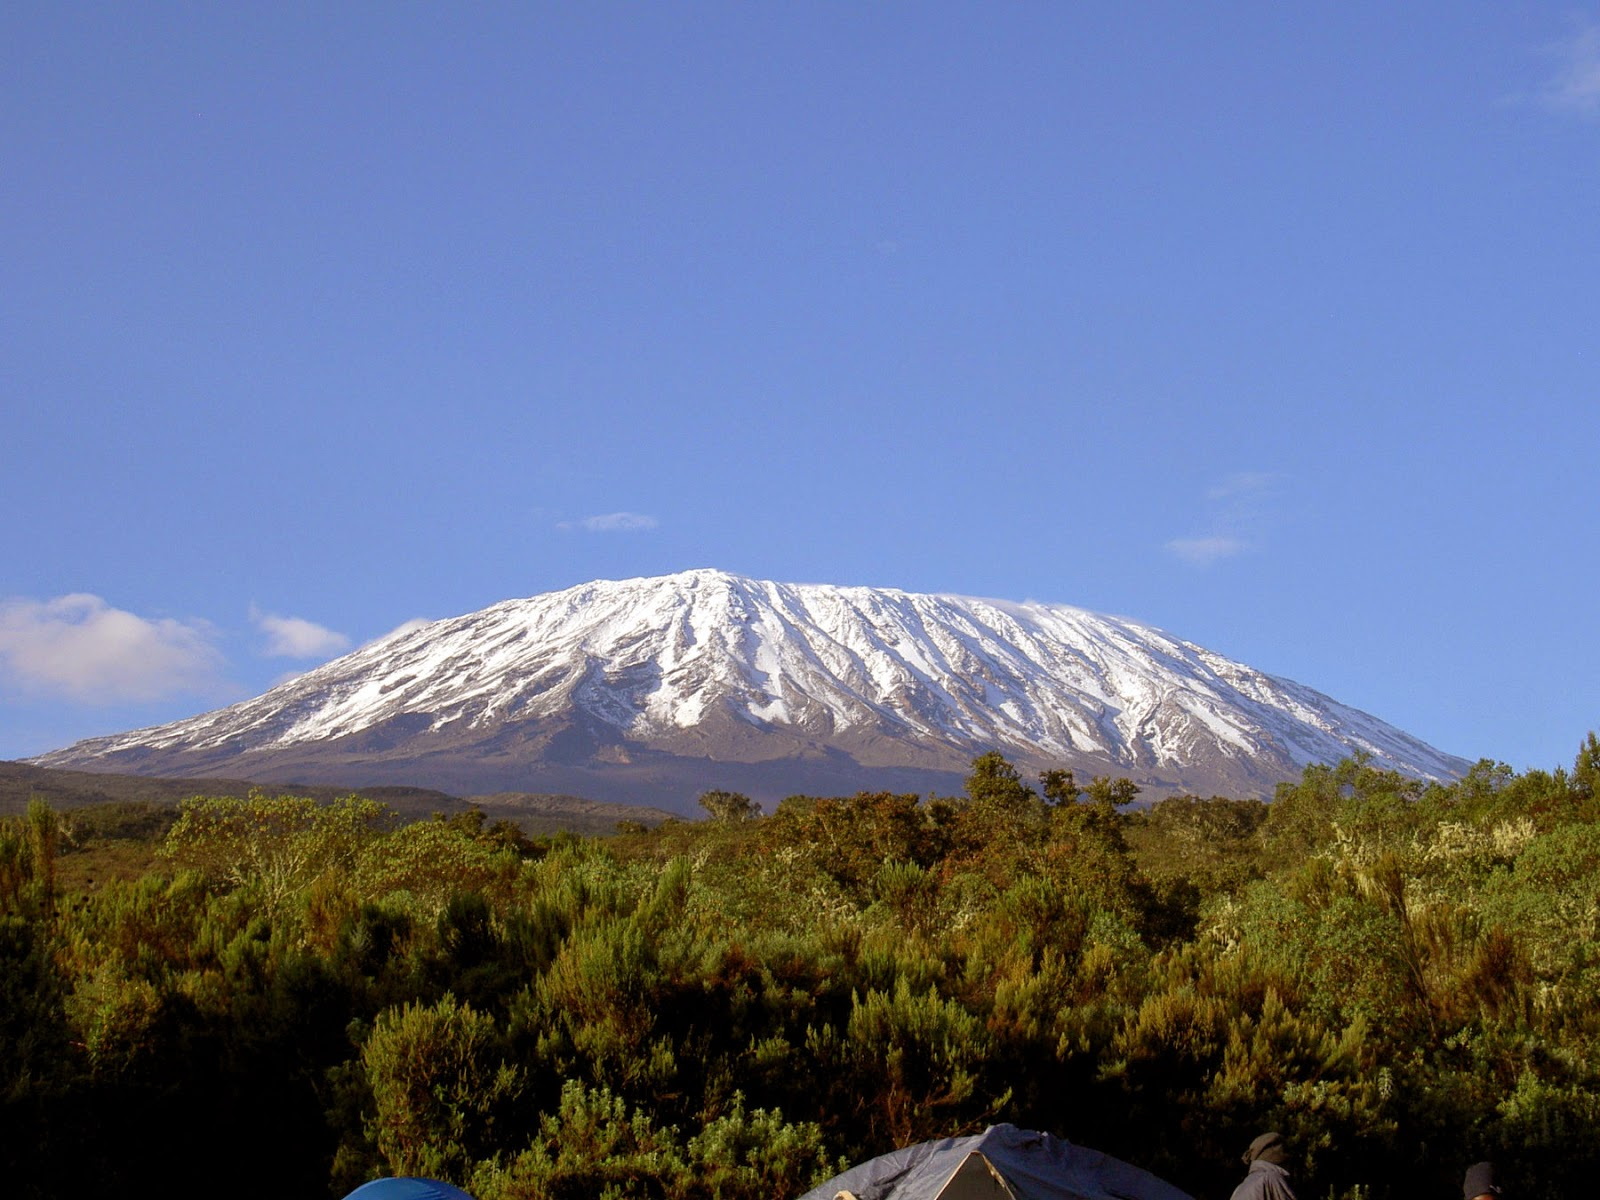 Mount Kilimanjaro from Vanishing ice all natural by Jim Steele